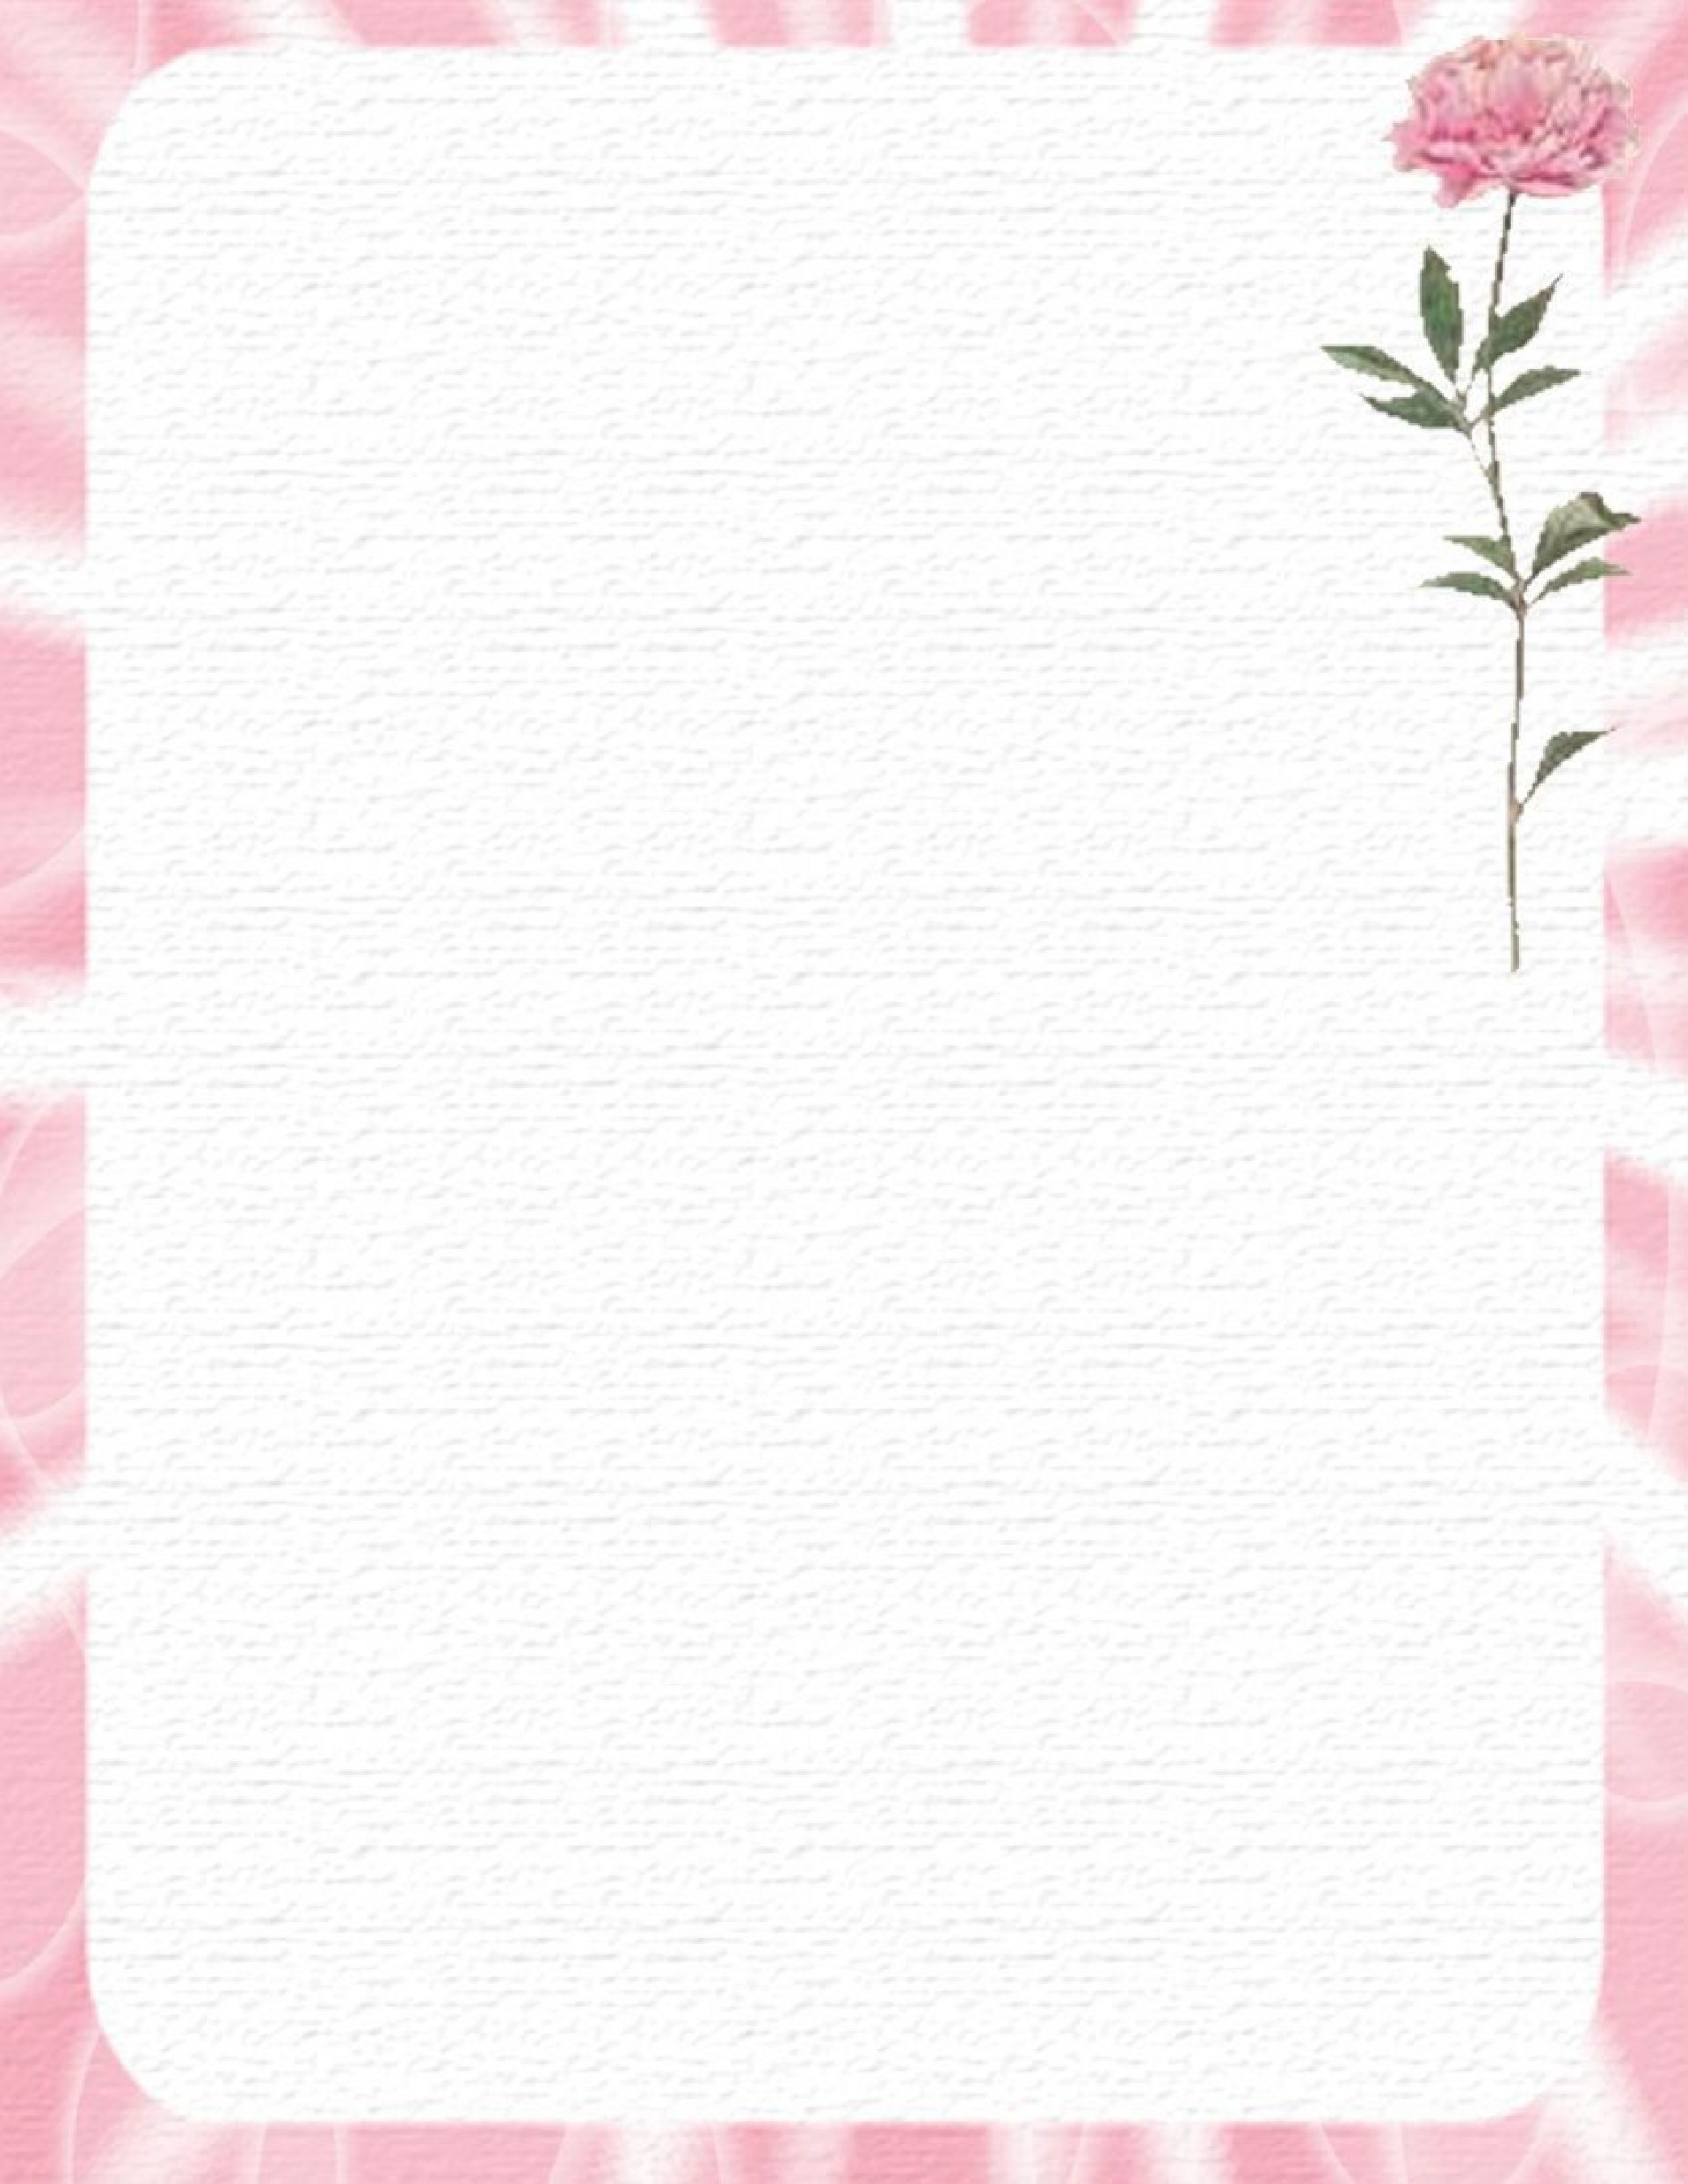 005 Outstanding Free Printable Stationery Paper Template High Def  Templates1920